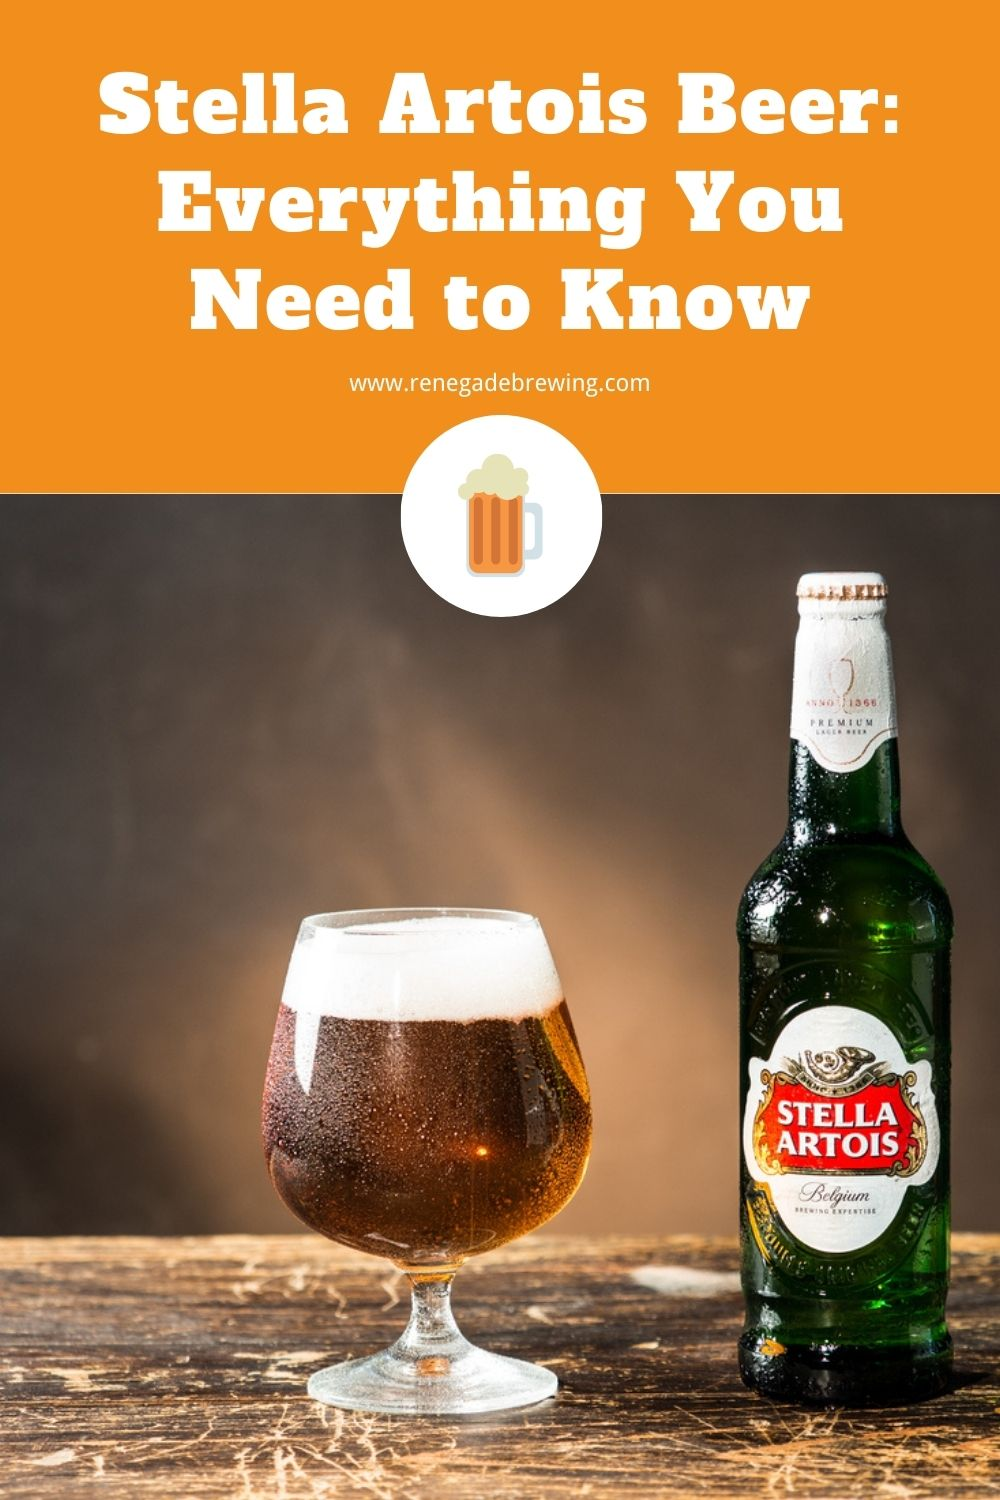 Stella Artois Beer Everything You Need to Know 1